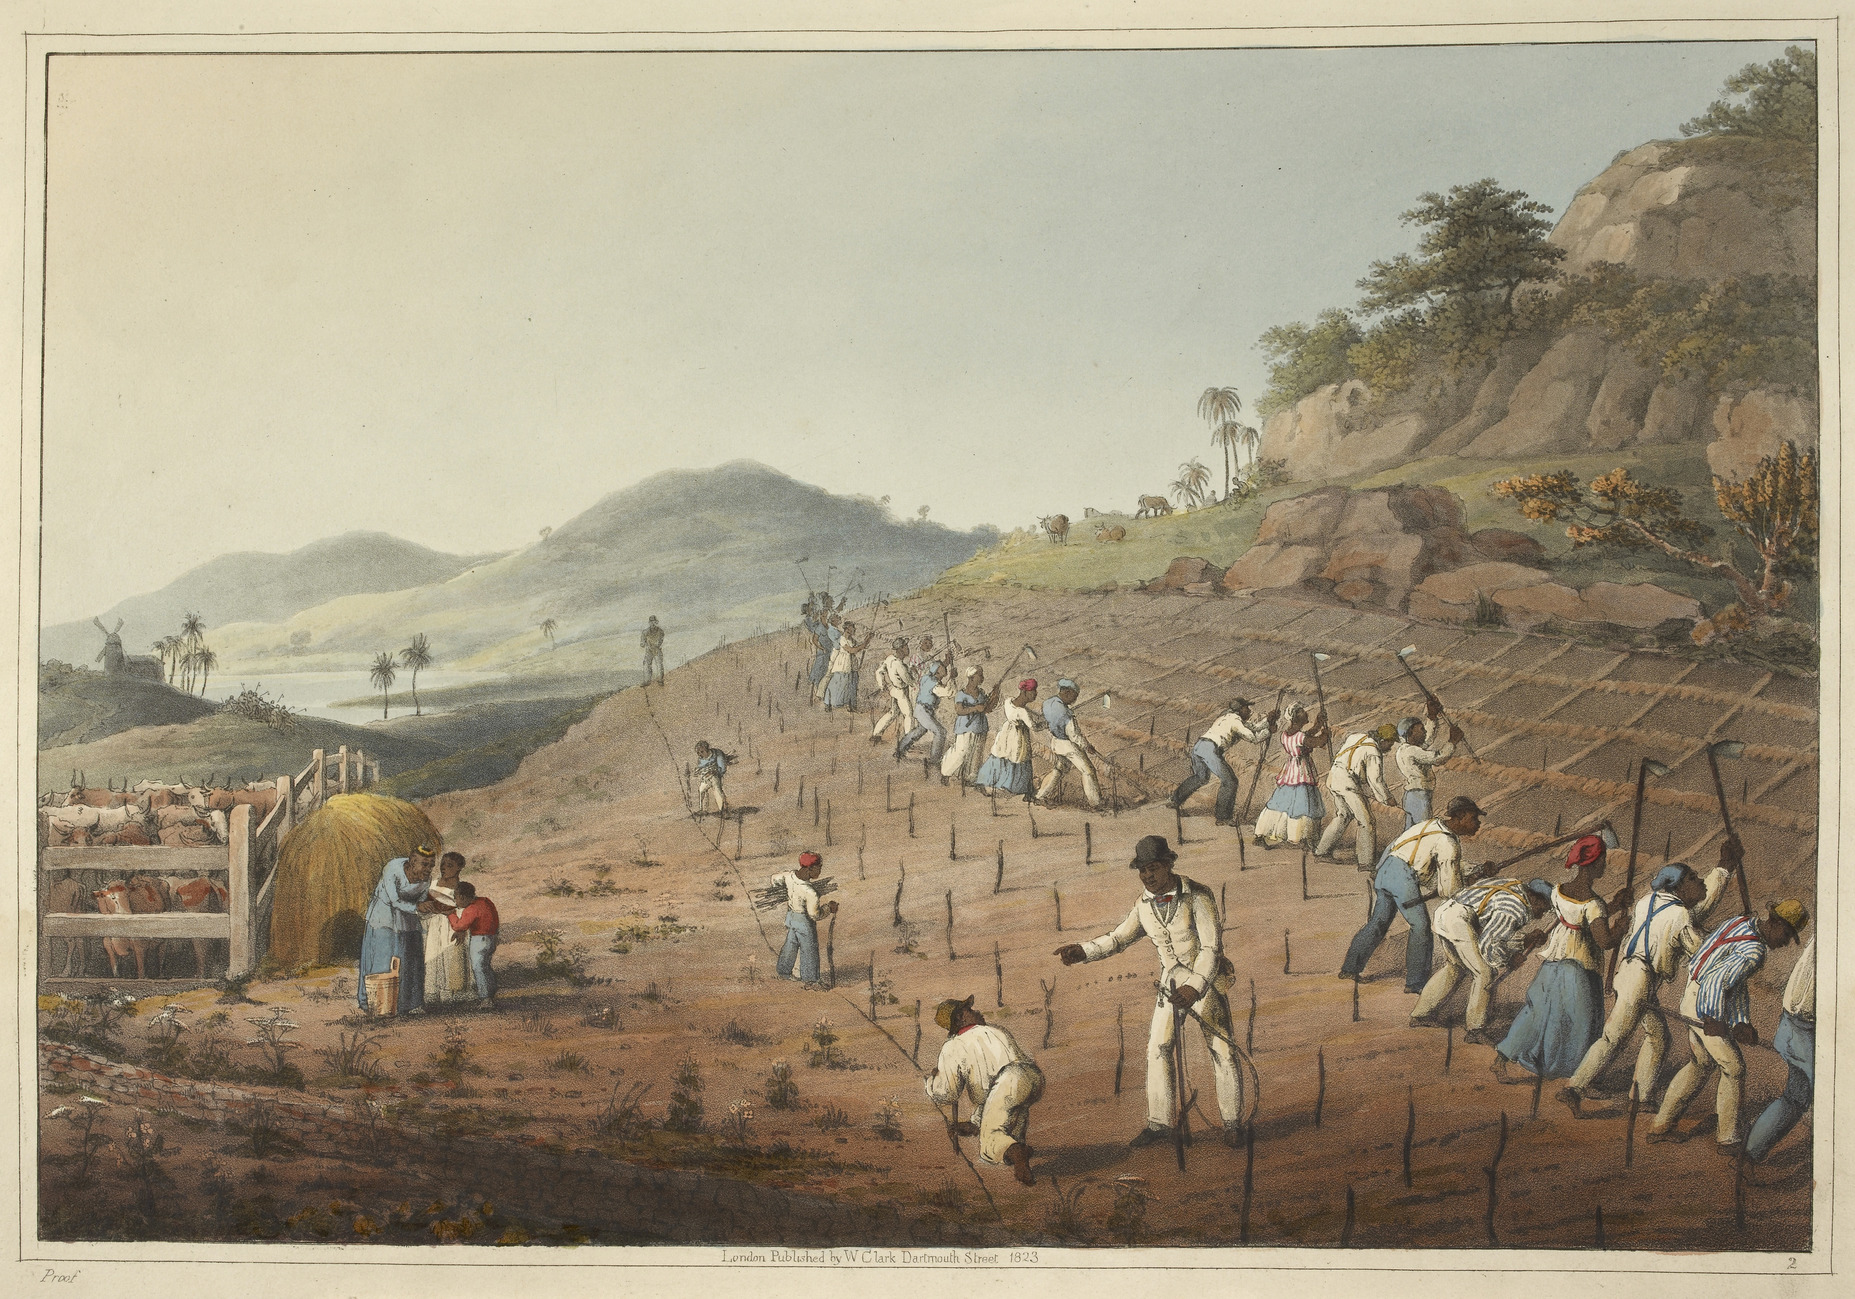 File:Digging the Cane-holes - Ten Views in the Island of Antigua (